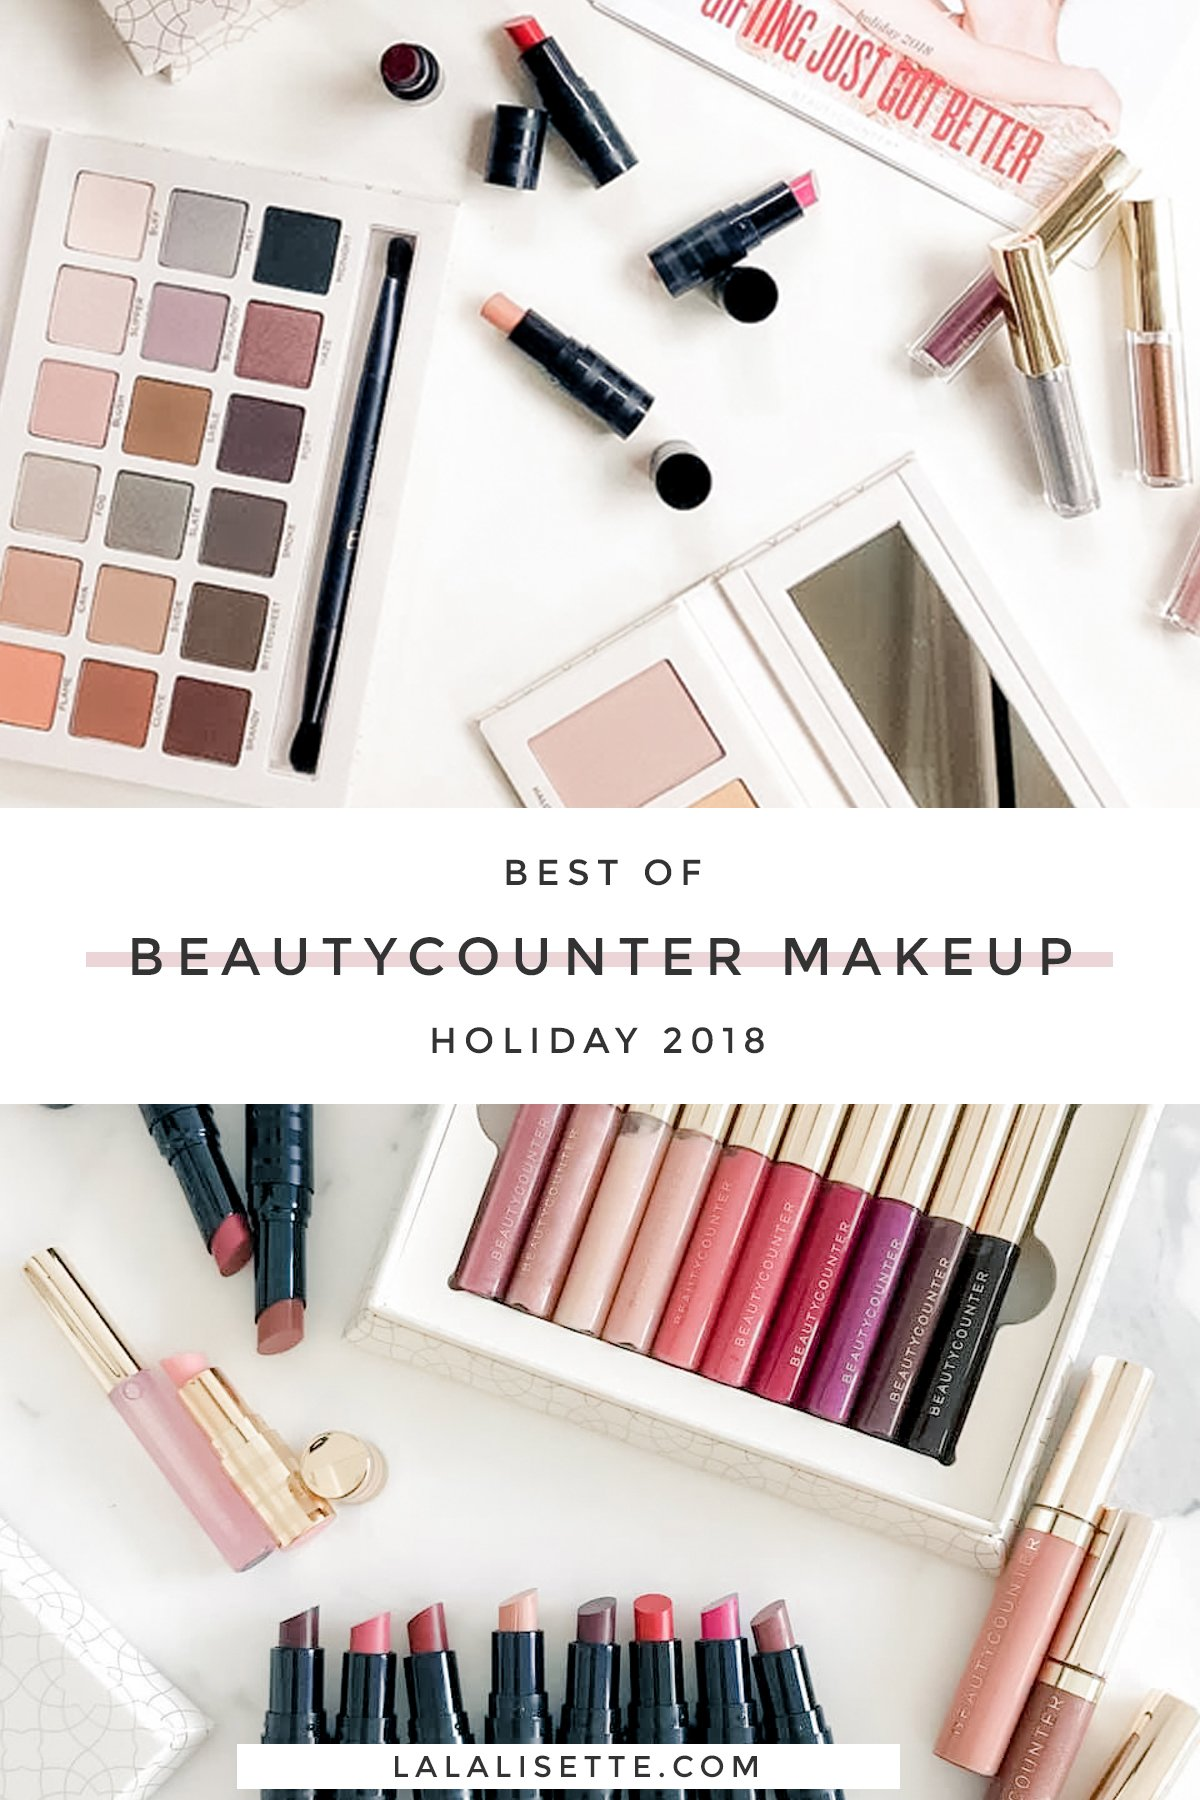 flatlays of Beautycounter makeup with text: Best of Beautycounter Makeup Holiday 2018